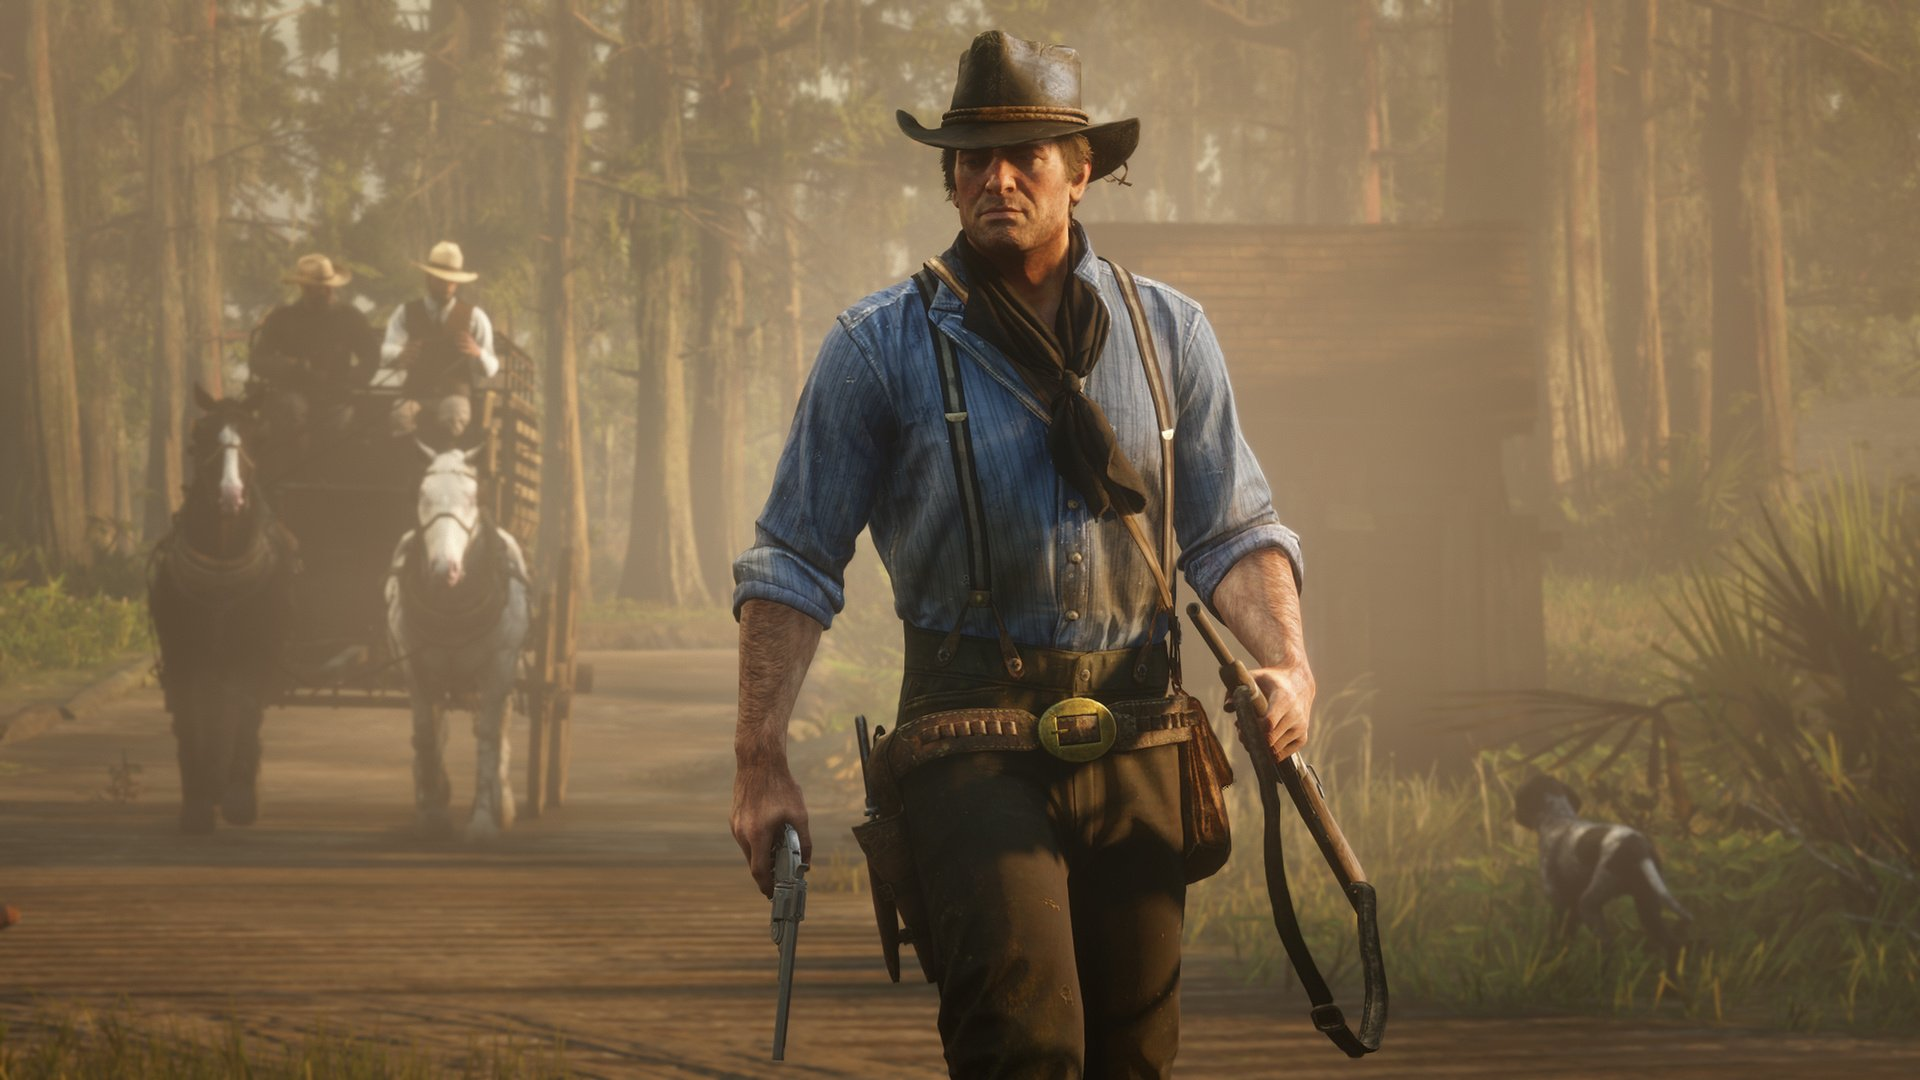 Ps4 games like red dead redemption